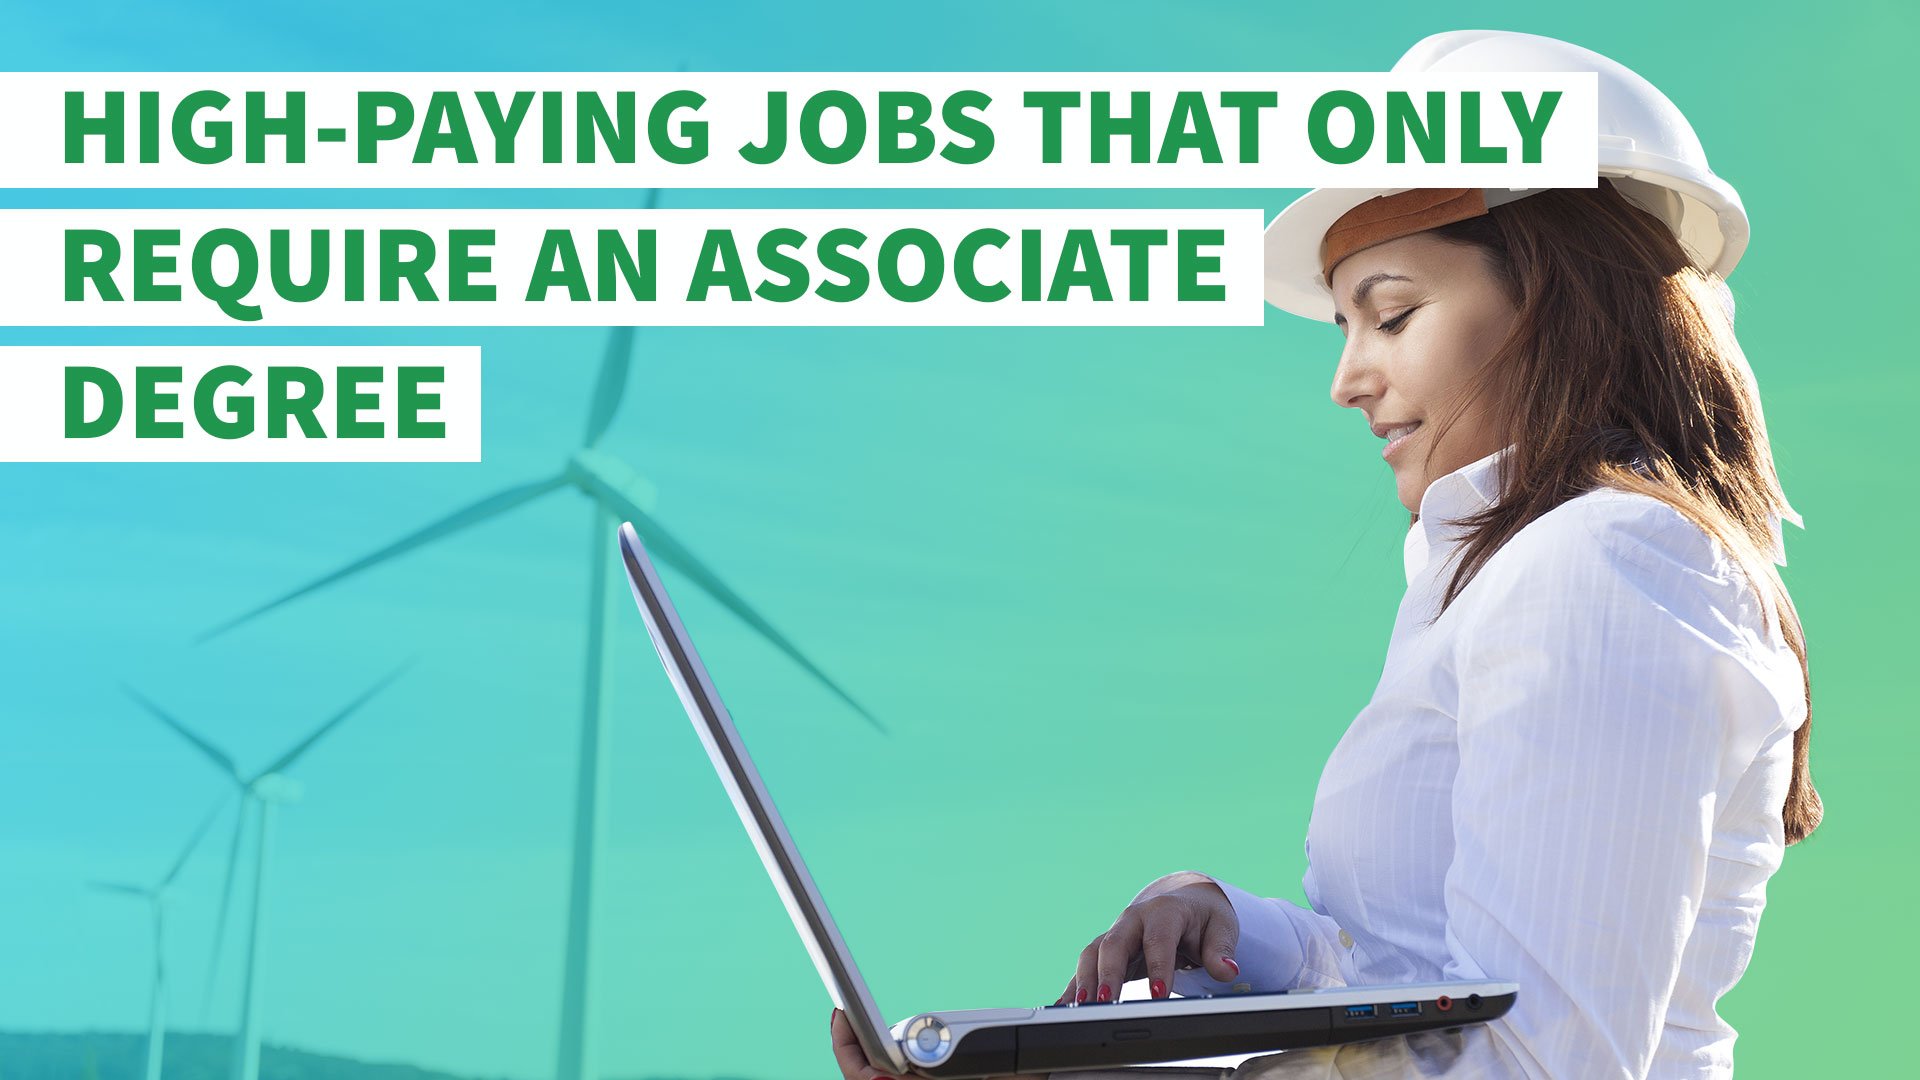 12 high paying jobs that only require an associate degree 12 high paying jobs that only require an associate degree gobankingrates 1betcityfo Gallery